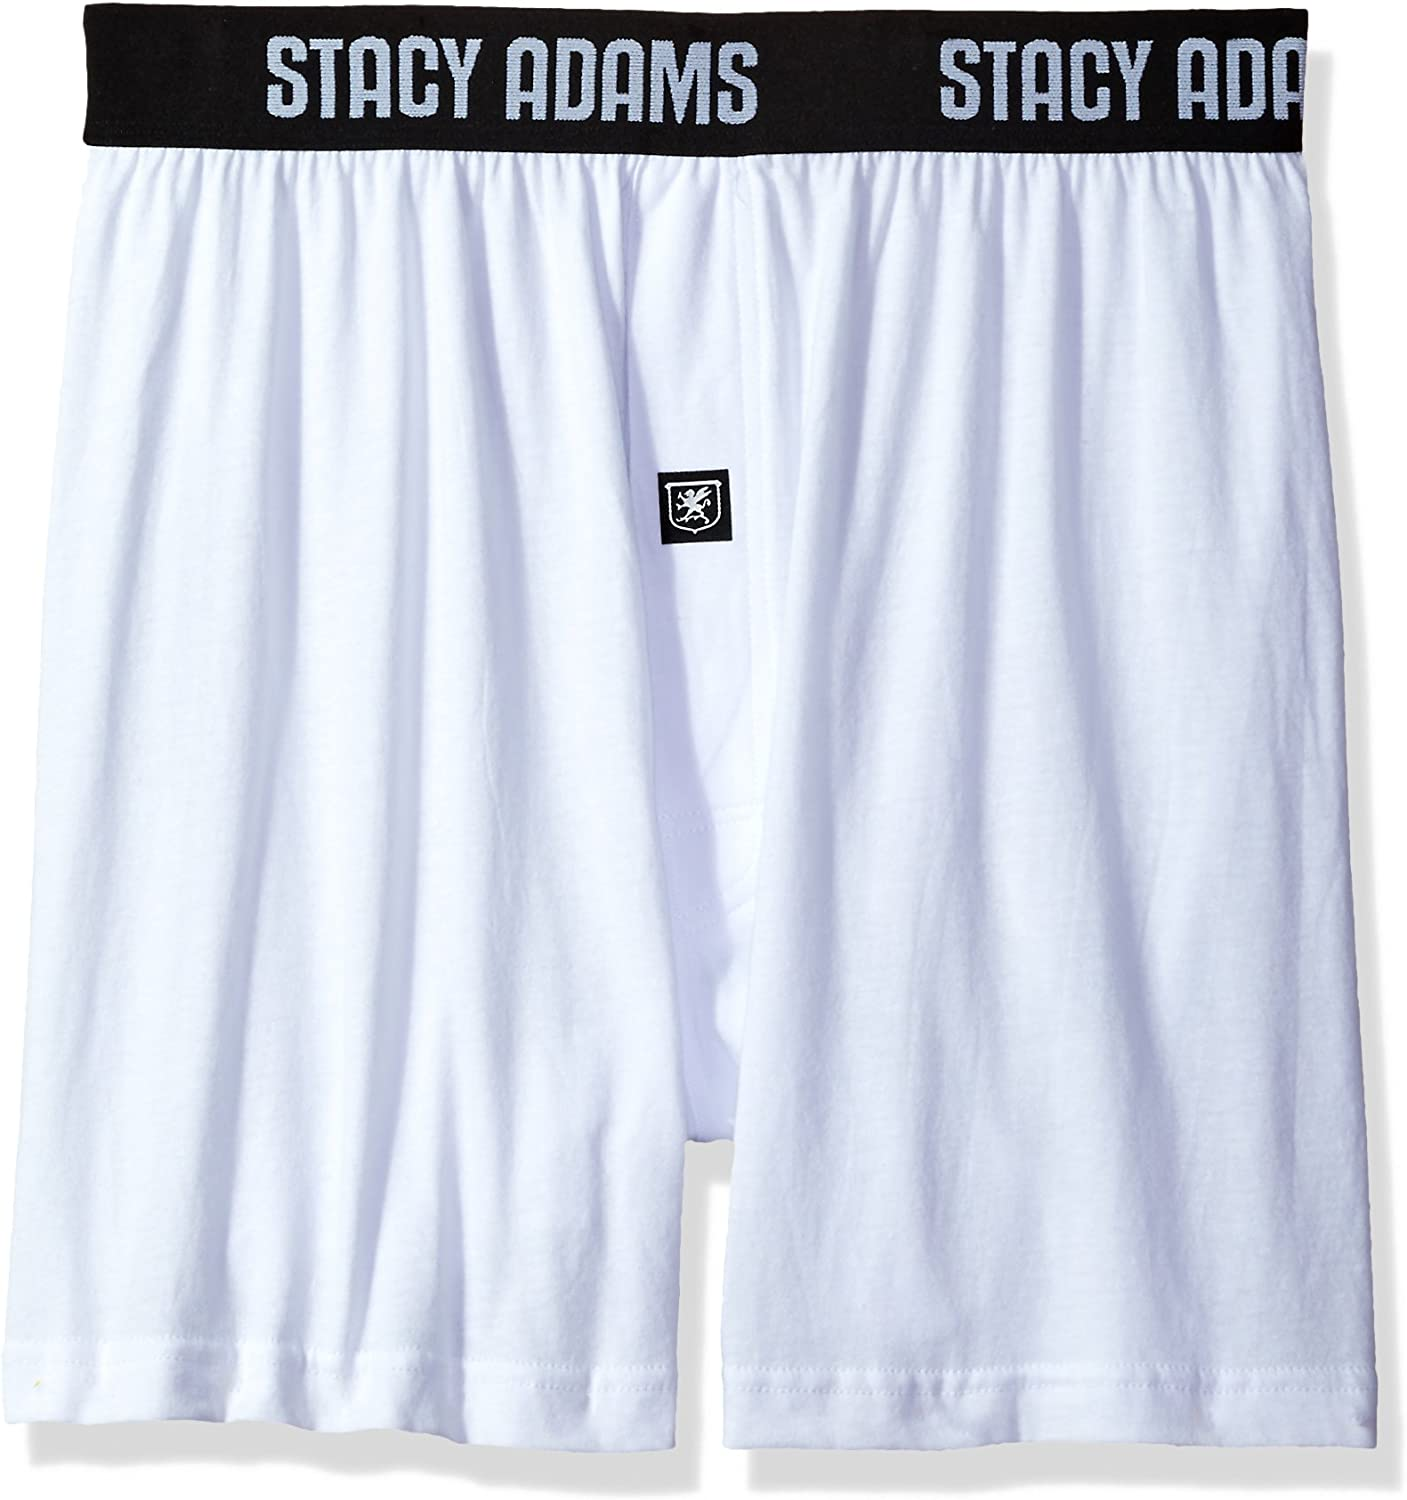 STACY ADAMS Men's 4pack Cotton Loose Boxer